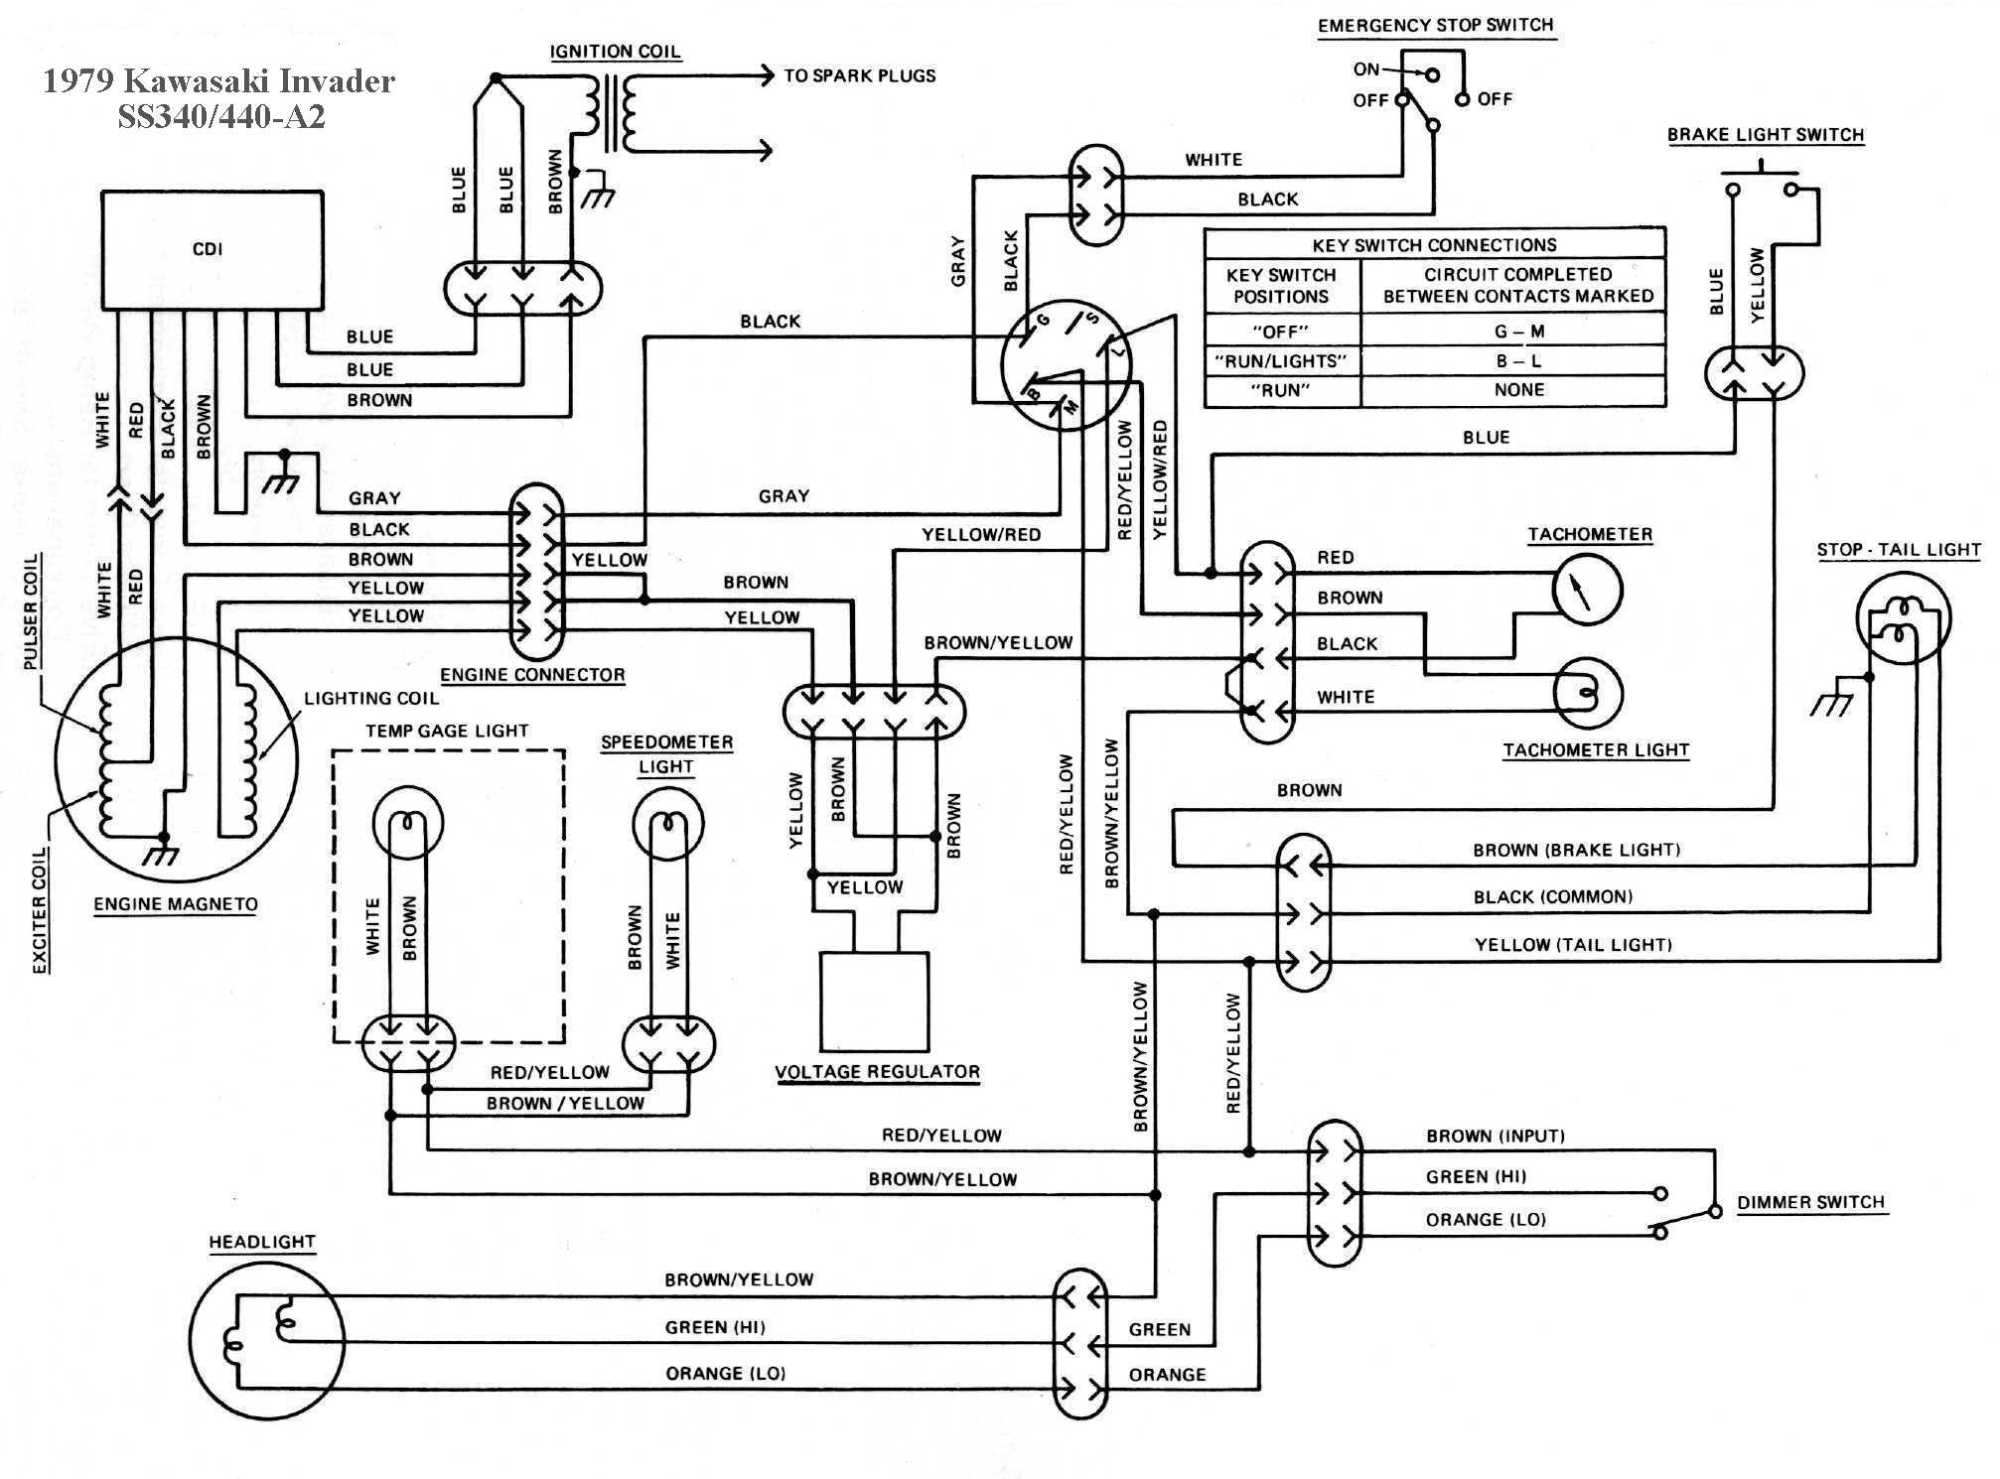 hight resolution of kawasaki bayou diagram wiring diagram operations 1986 kawasaki bayou 300 wiring diagram kawasaki bayou 300 wiring schematics